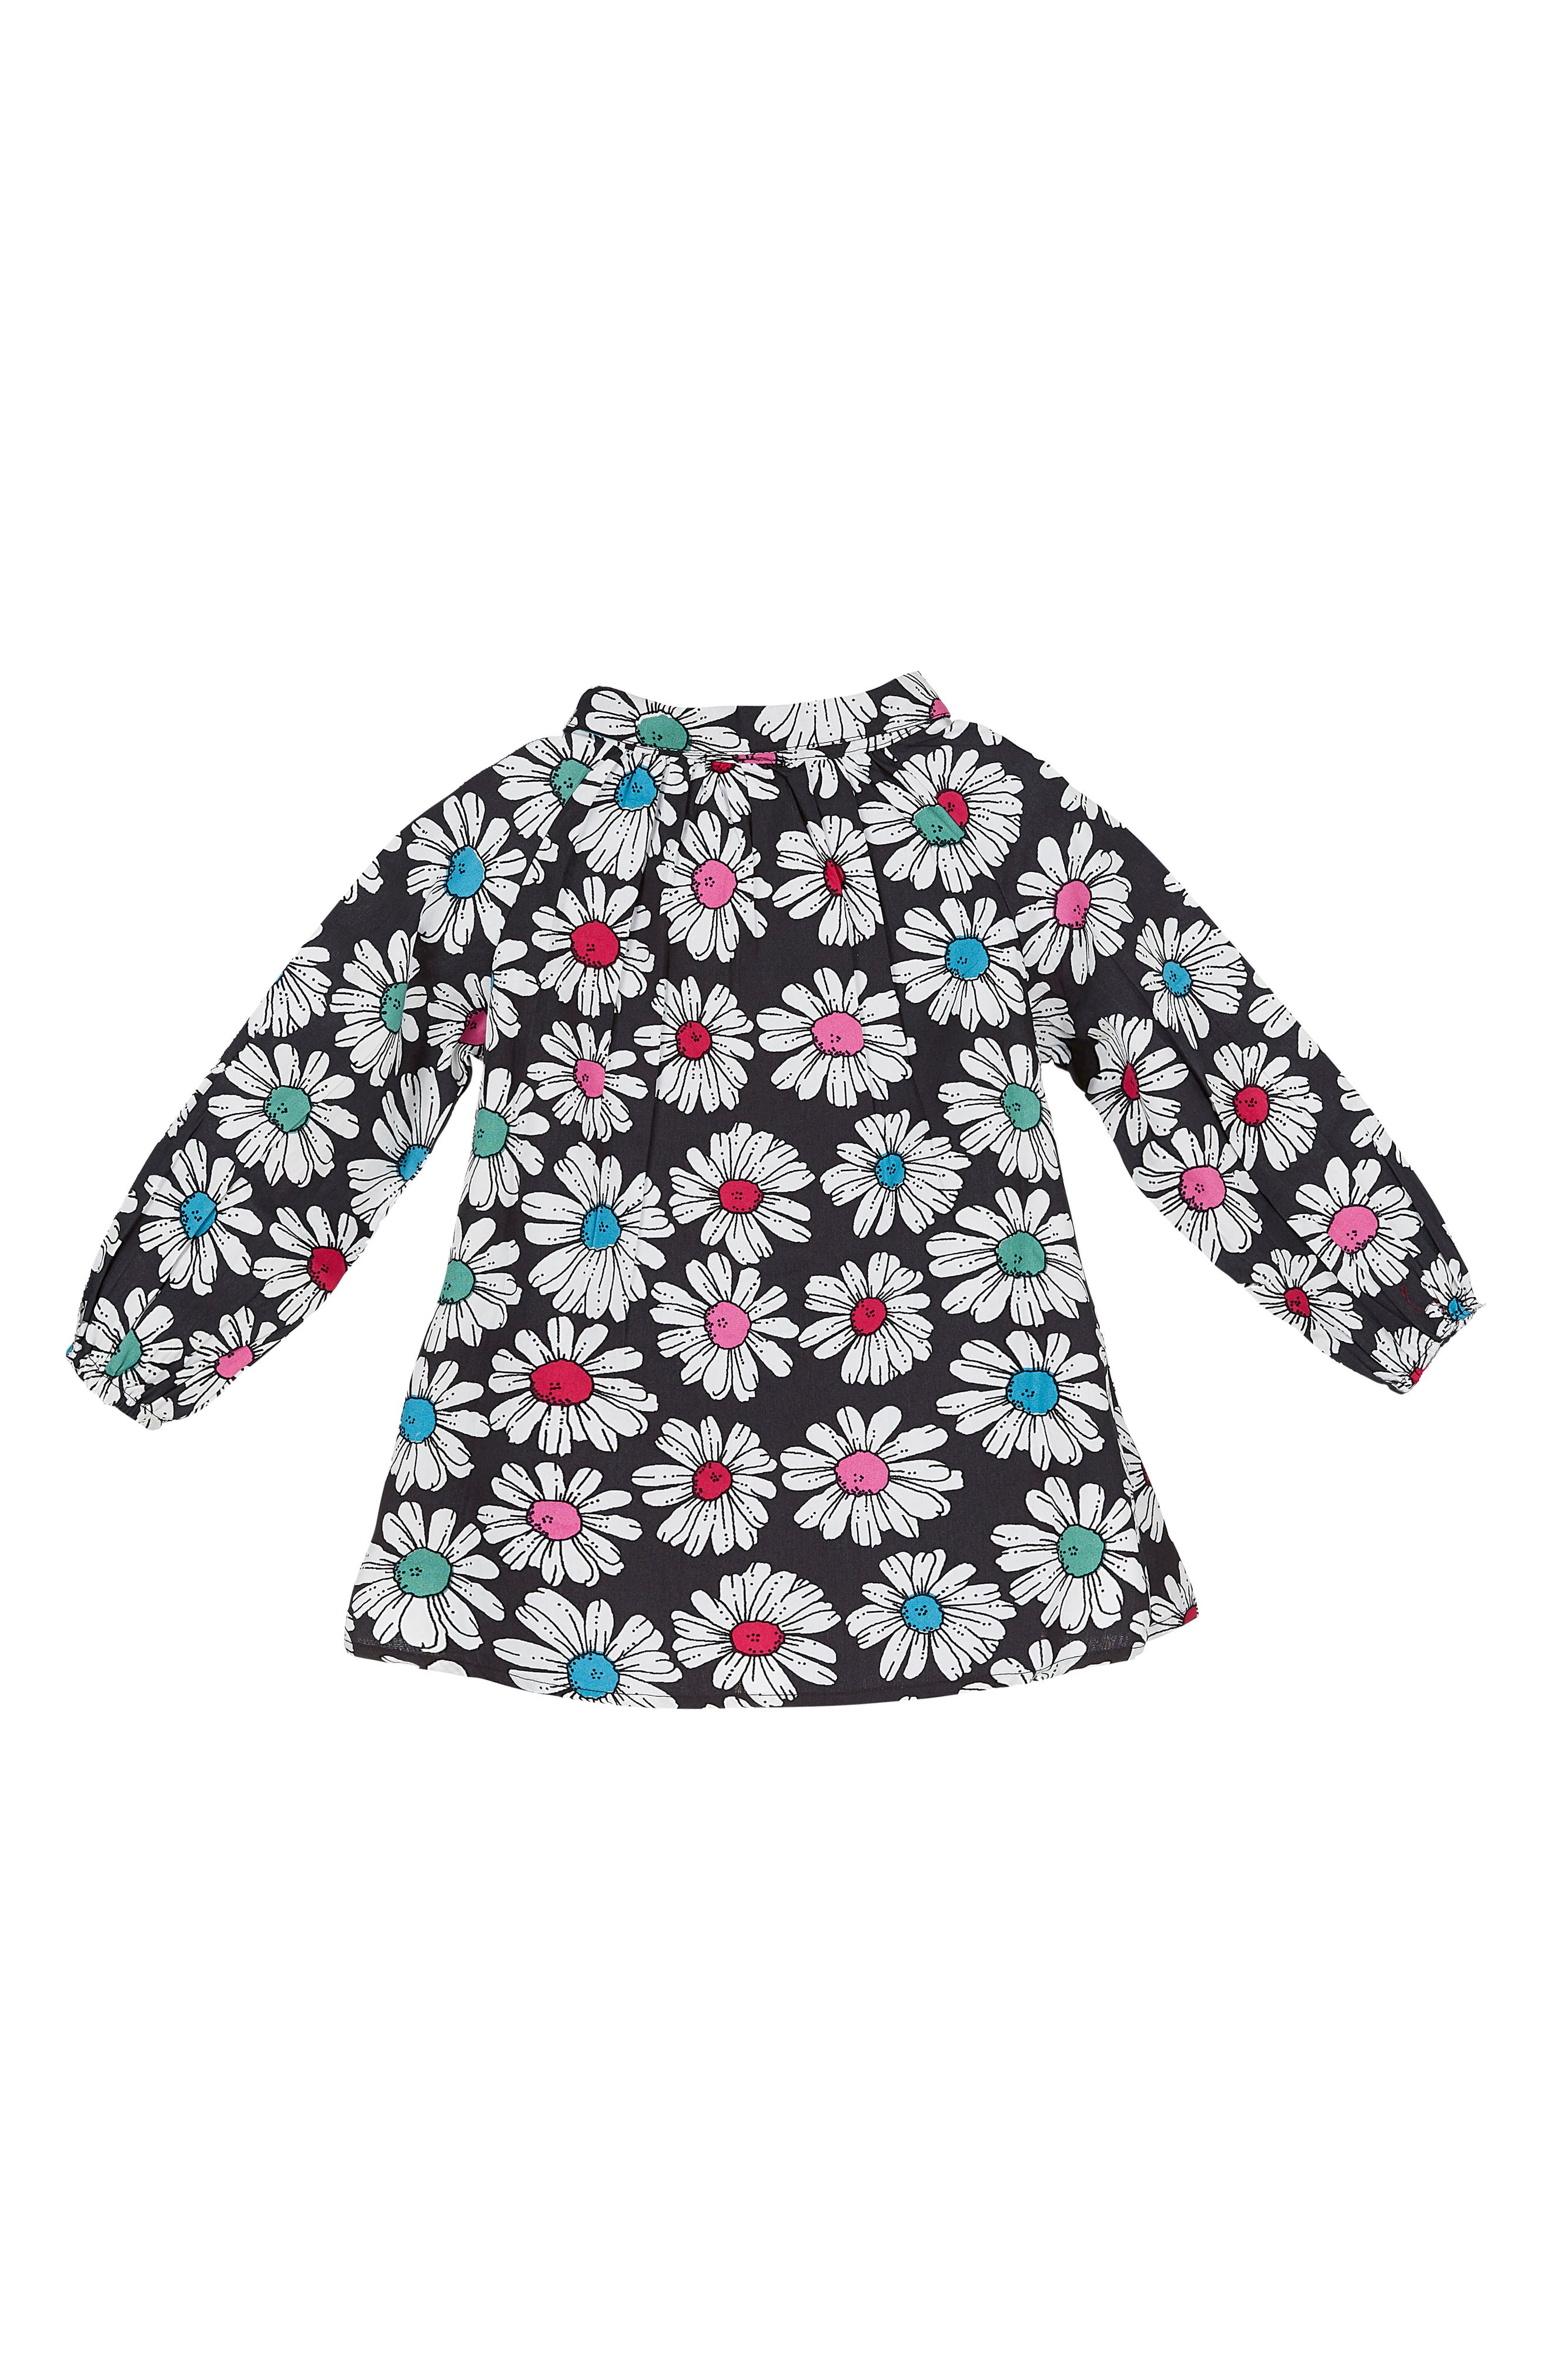 Floral Print Pleated Shirt,                             Main thumbnail 1, color,                             001